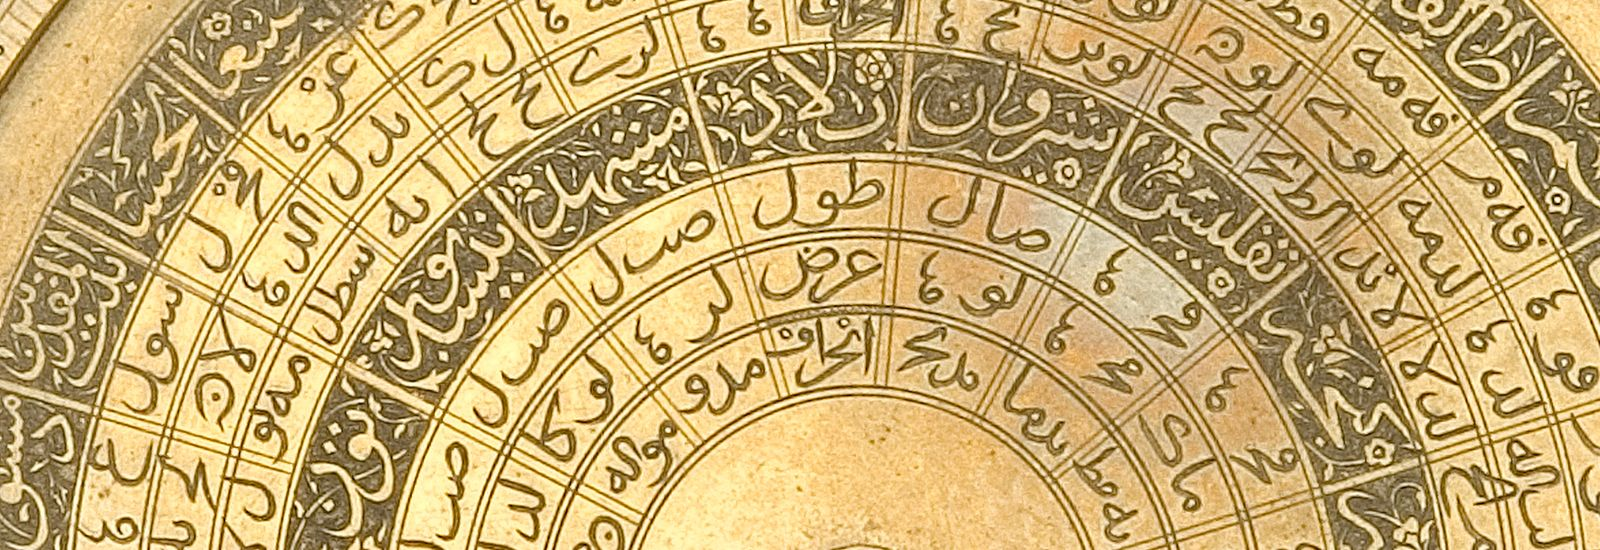 Detail of Farsi engraved on a brass astrolabe from the 18th century in the History of Science museum